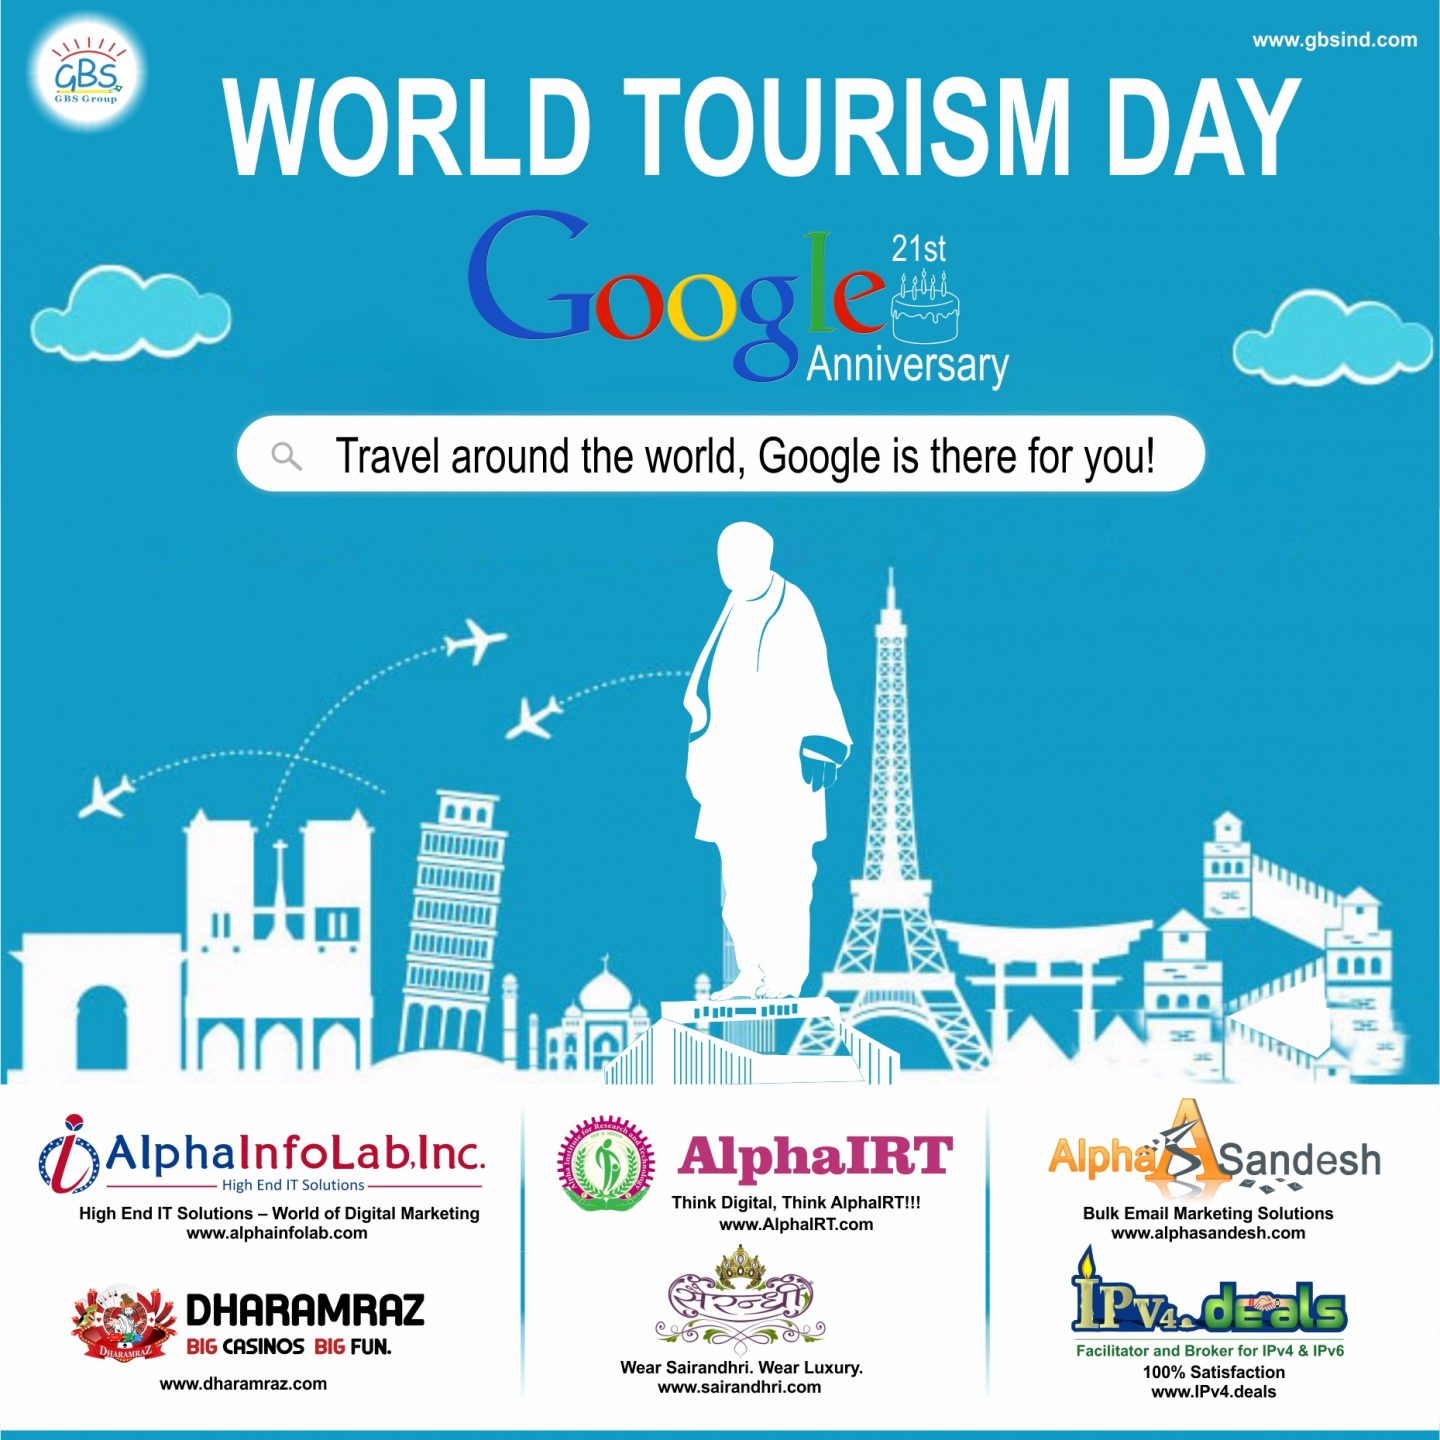 World Tourism Day | Goggle's 21st anniversary